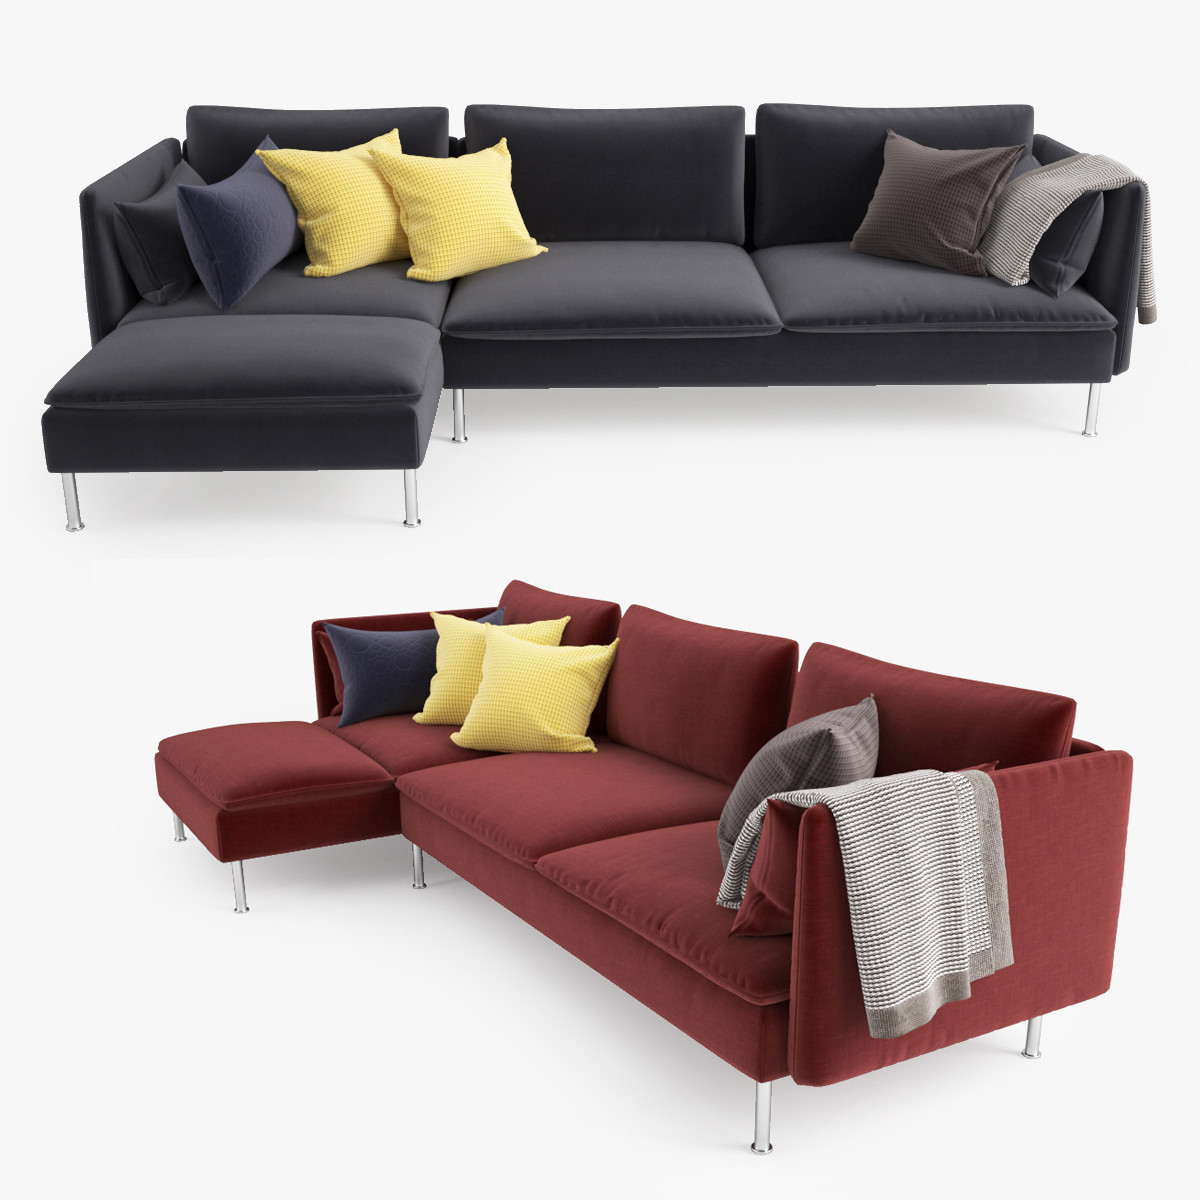 amazing d model ikea soderhamn sofa chaise with ikea chaise. Black Bedroom Furniture Sets. Home Design Ideas